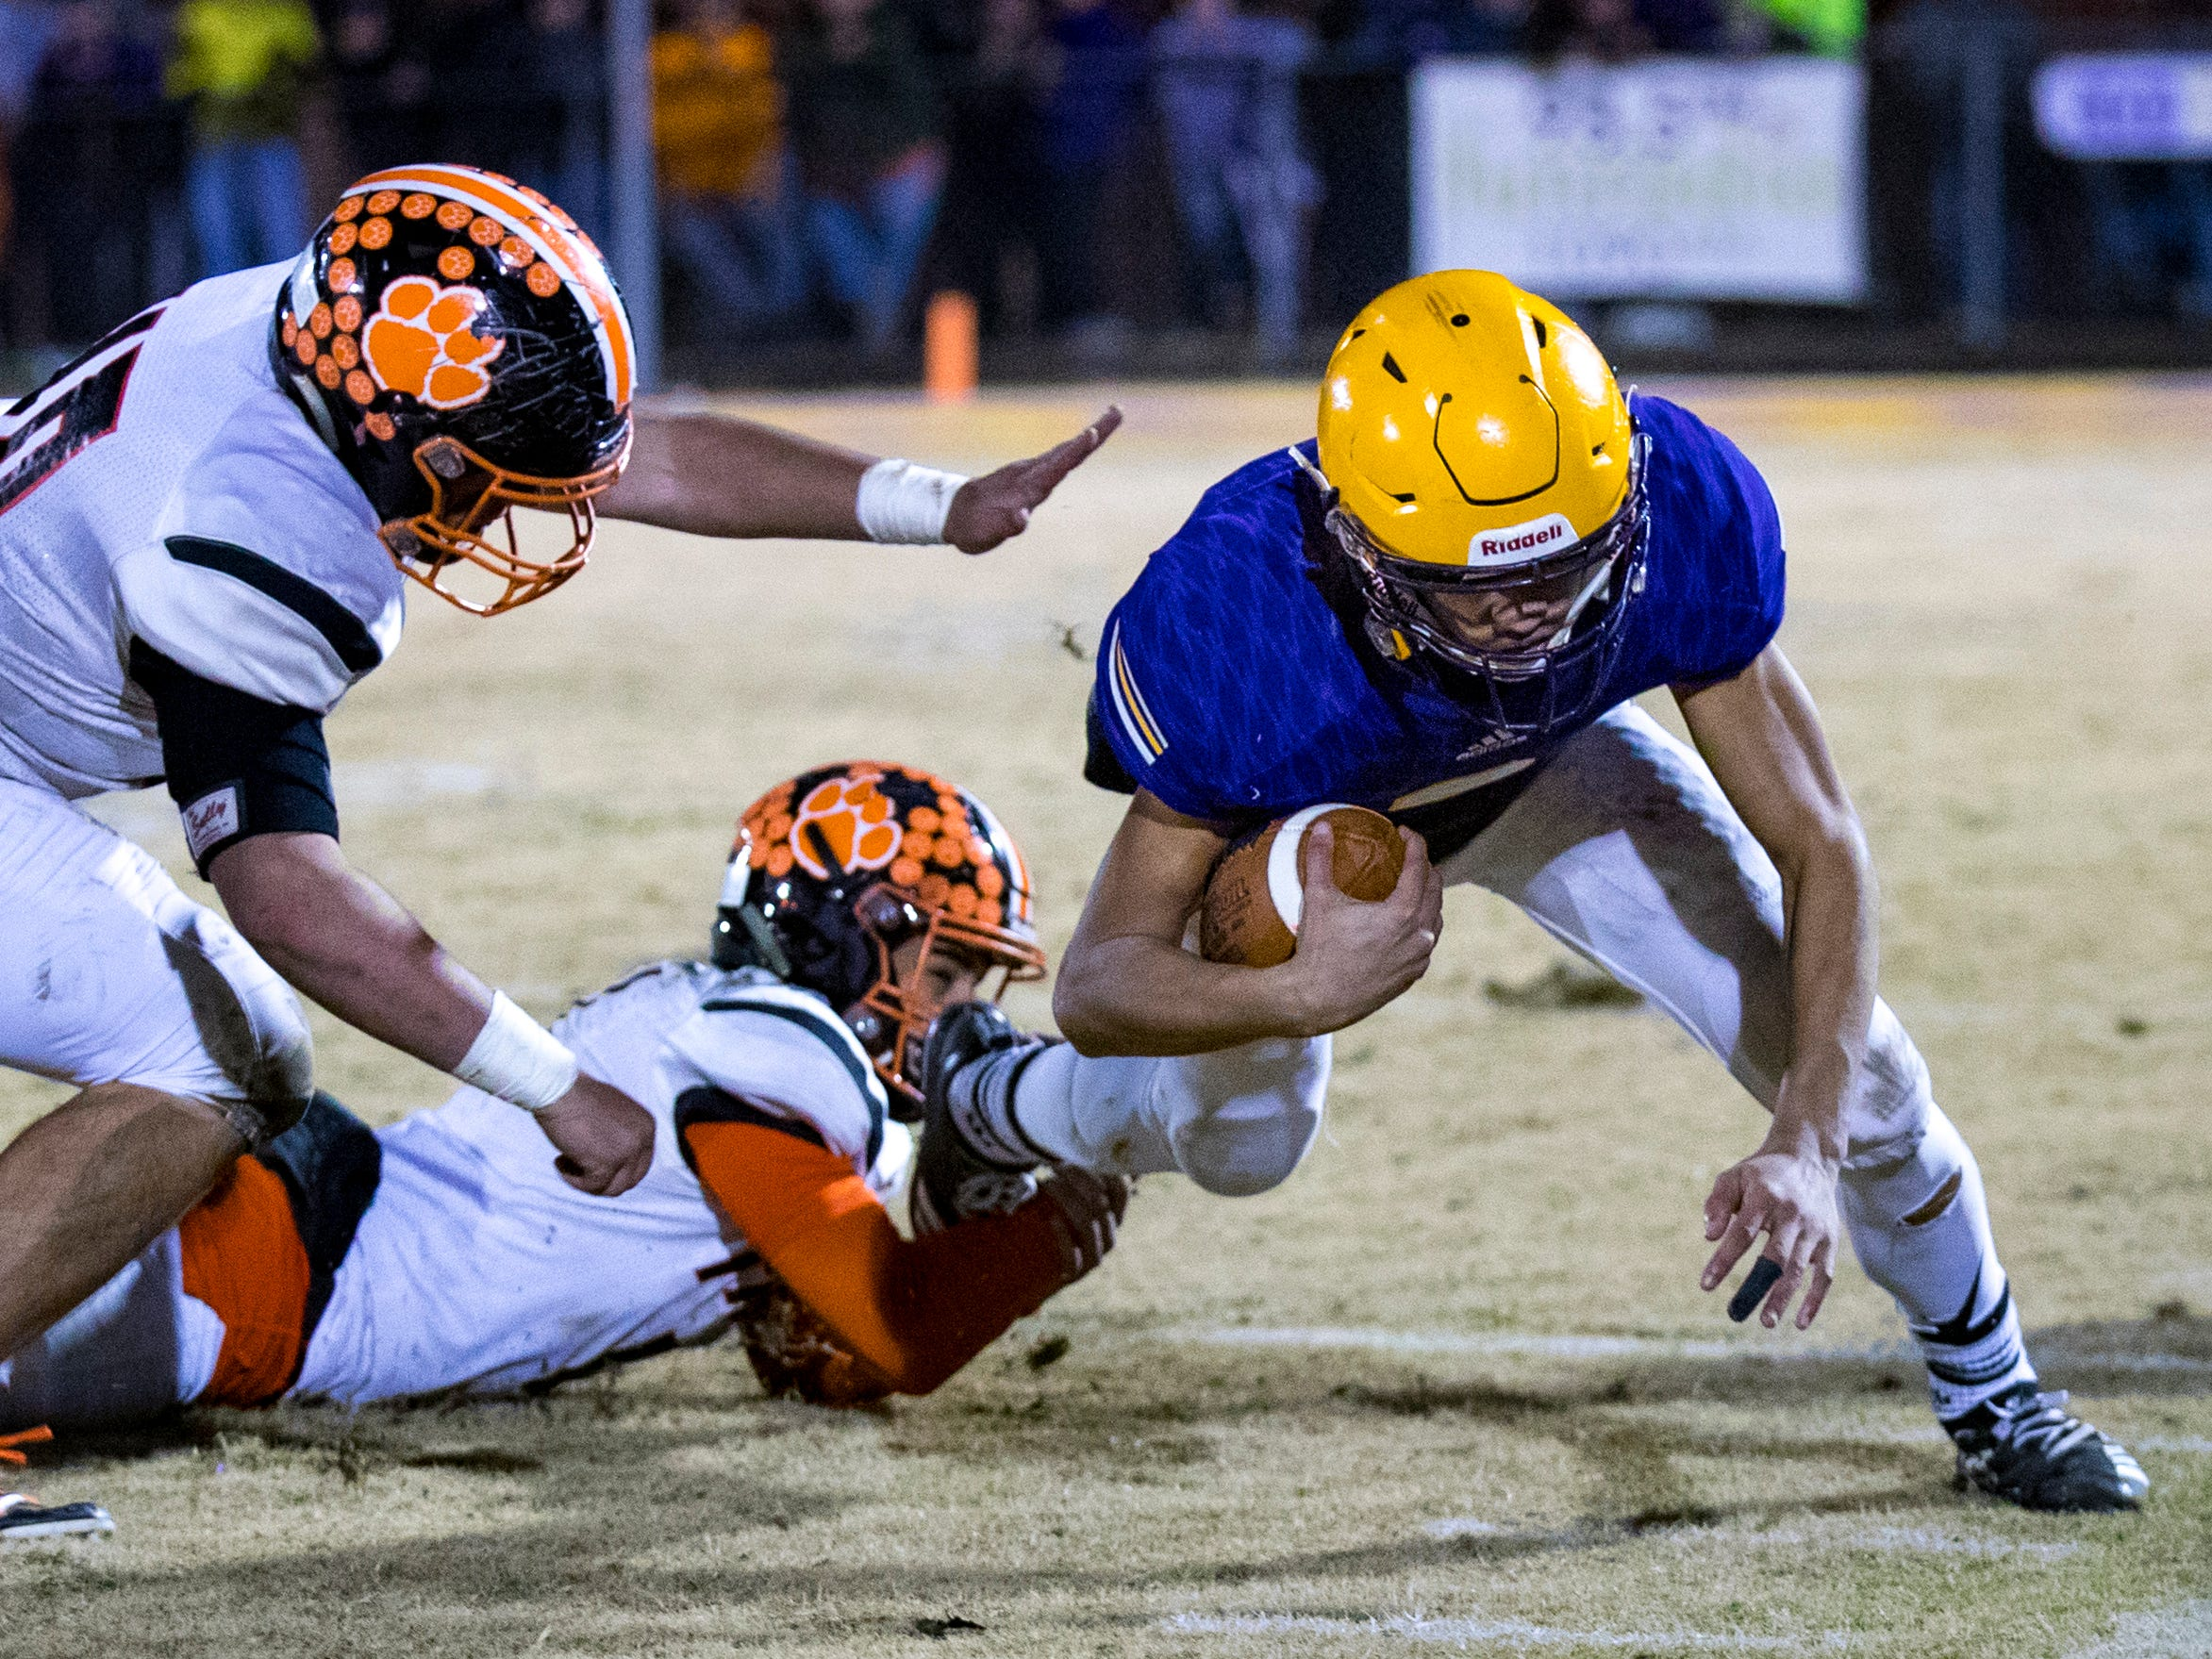 Trousdale County's Jayden Hicks (6) is brought down during Trousdale County's game against Meigs County at Jim Satterfield Stadium in Hartsville on Friday, Nov. 23, 2018.